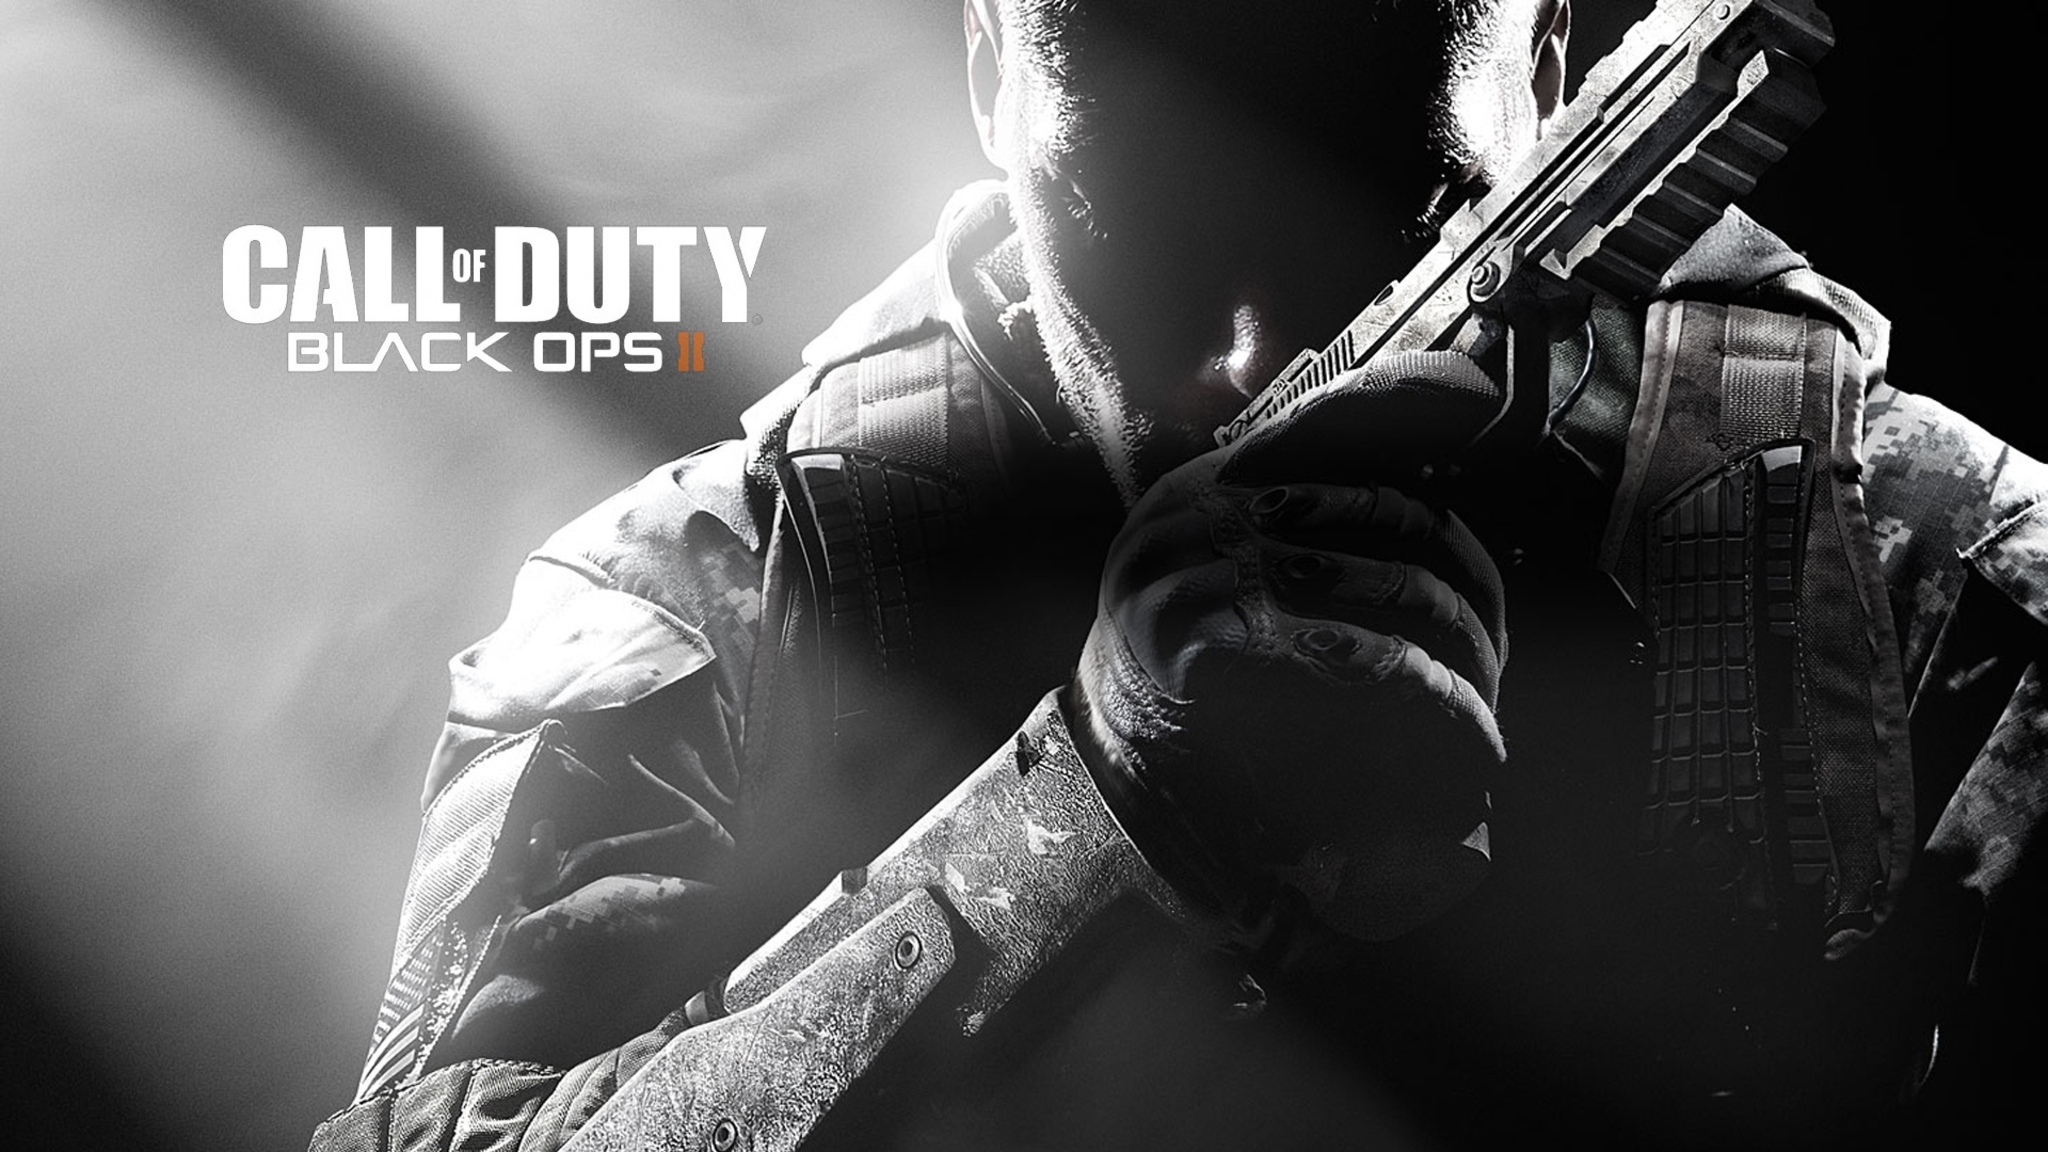 Call Of Duty Bo2 Wallpaper: 2048x1152 Call Of Duty Black Ops 2 2048x1152 Resolution HD